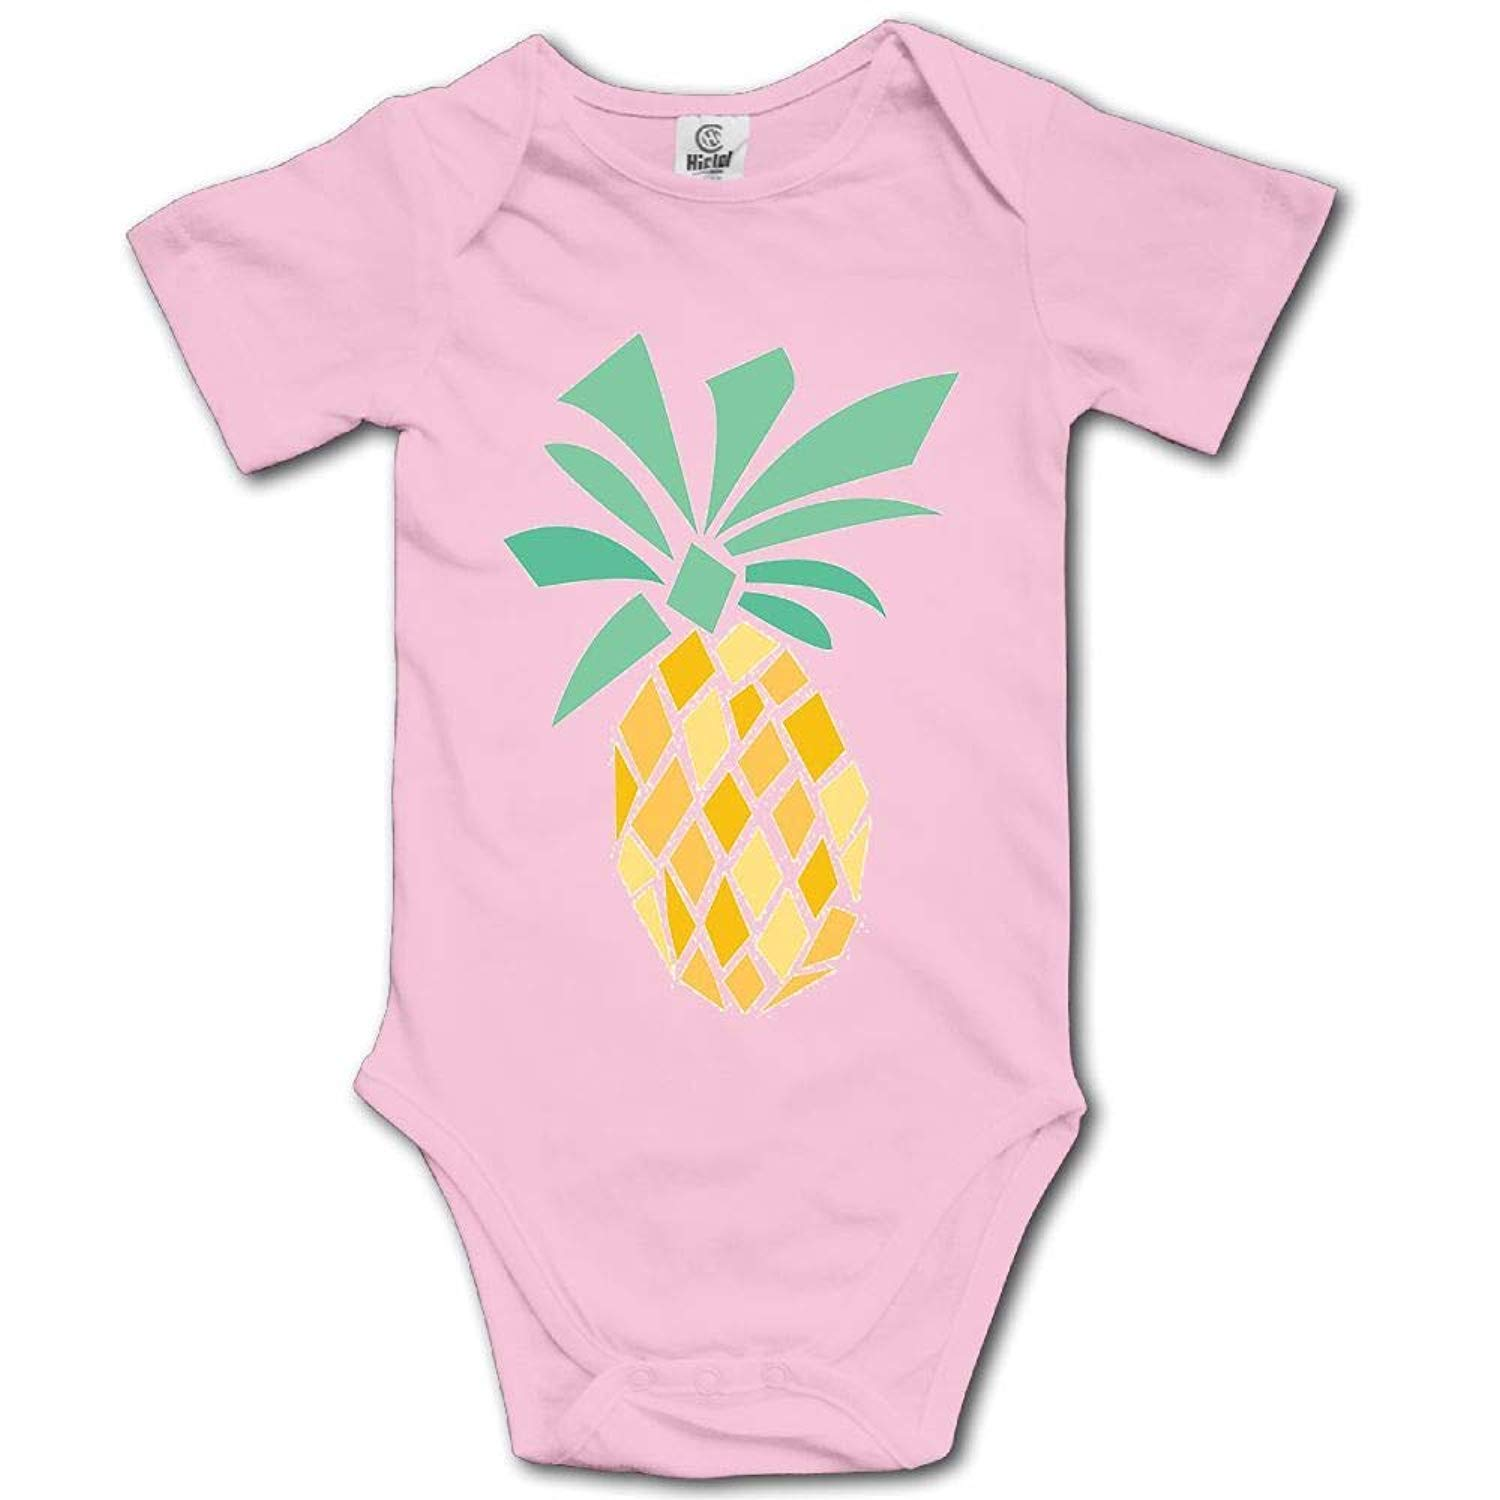 ARTOPB Baby Climbing Clothes Set Dandelion Bodysuits Romper Short Sleeved Light Onesies